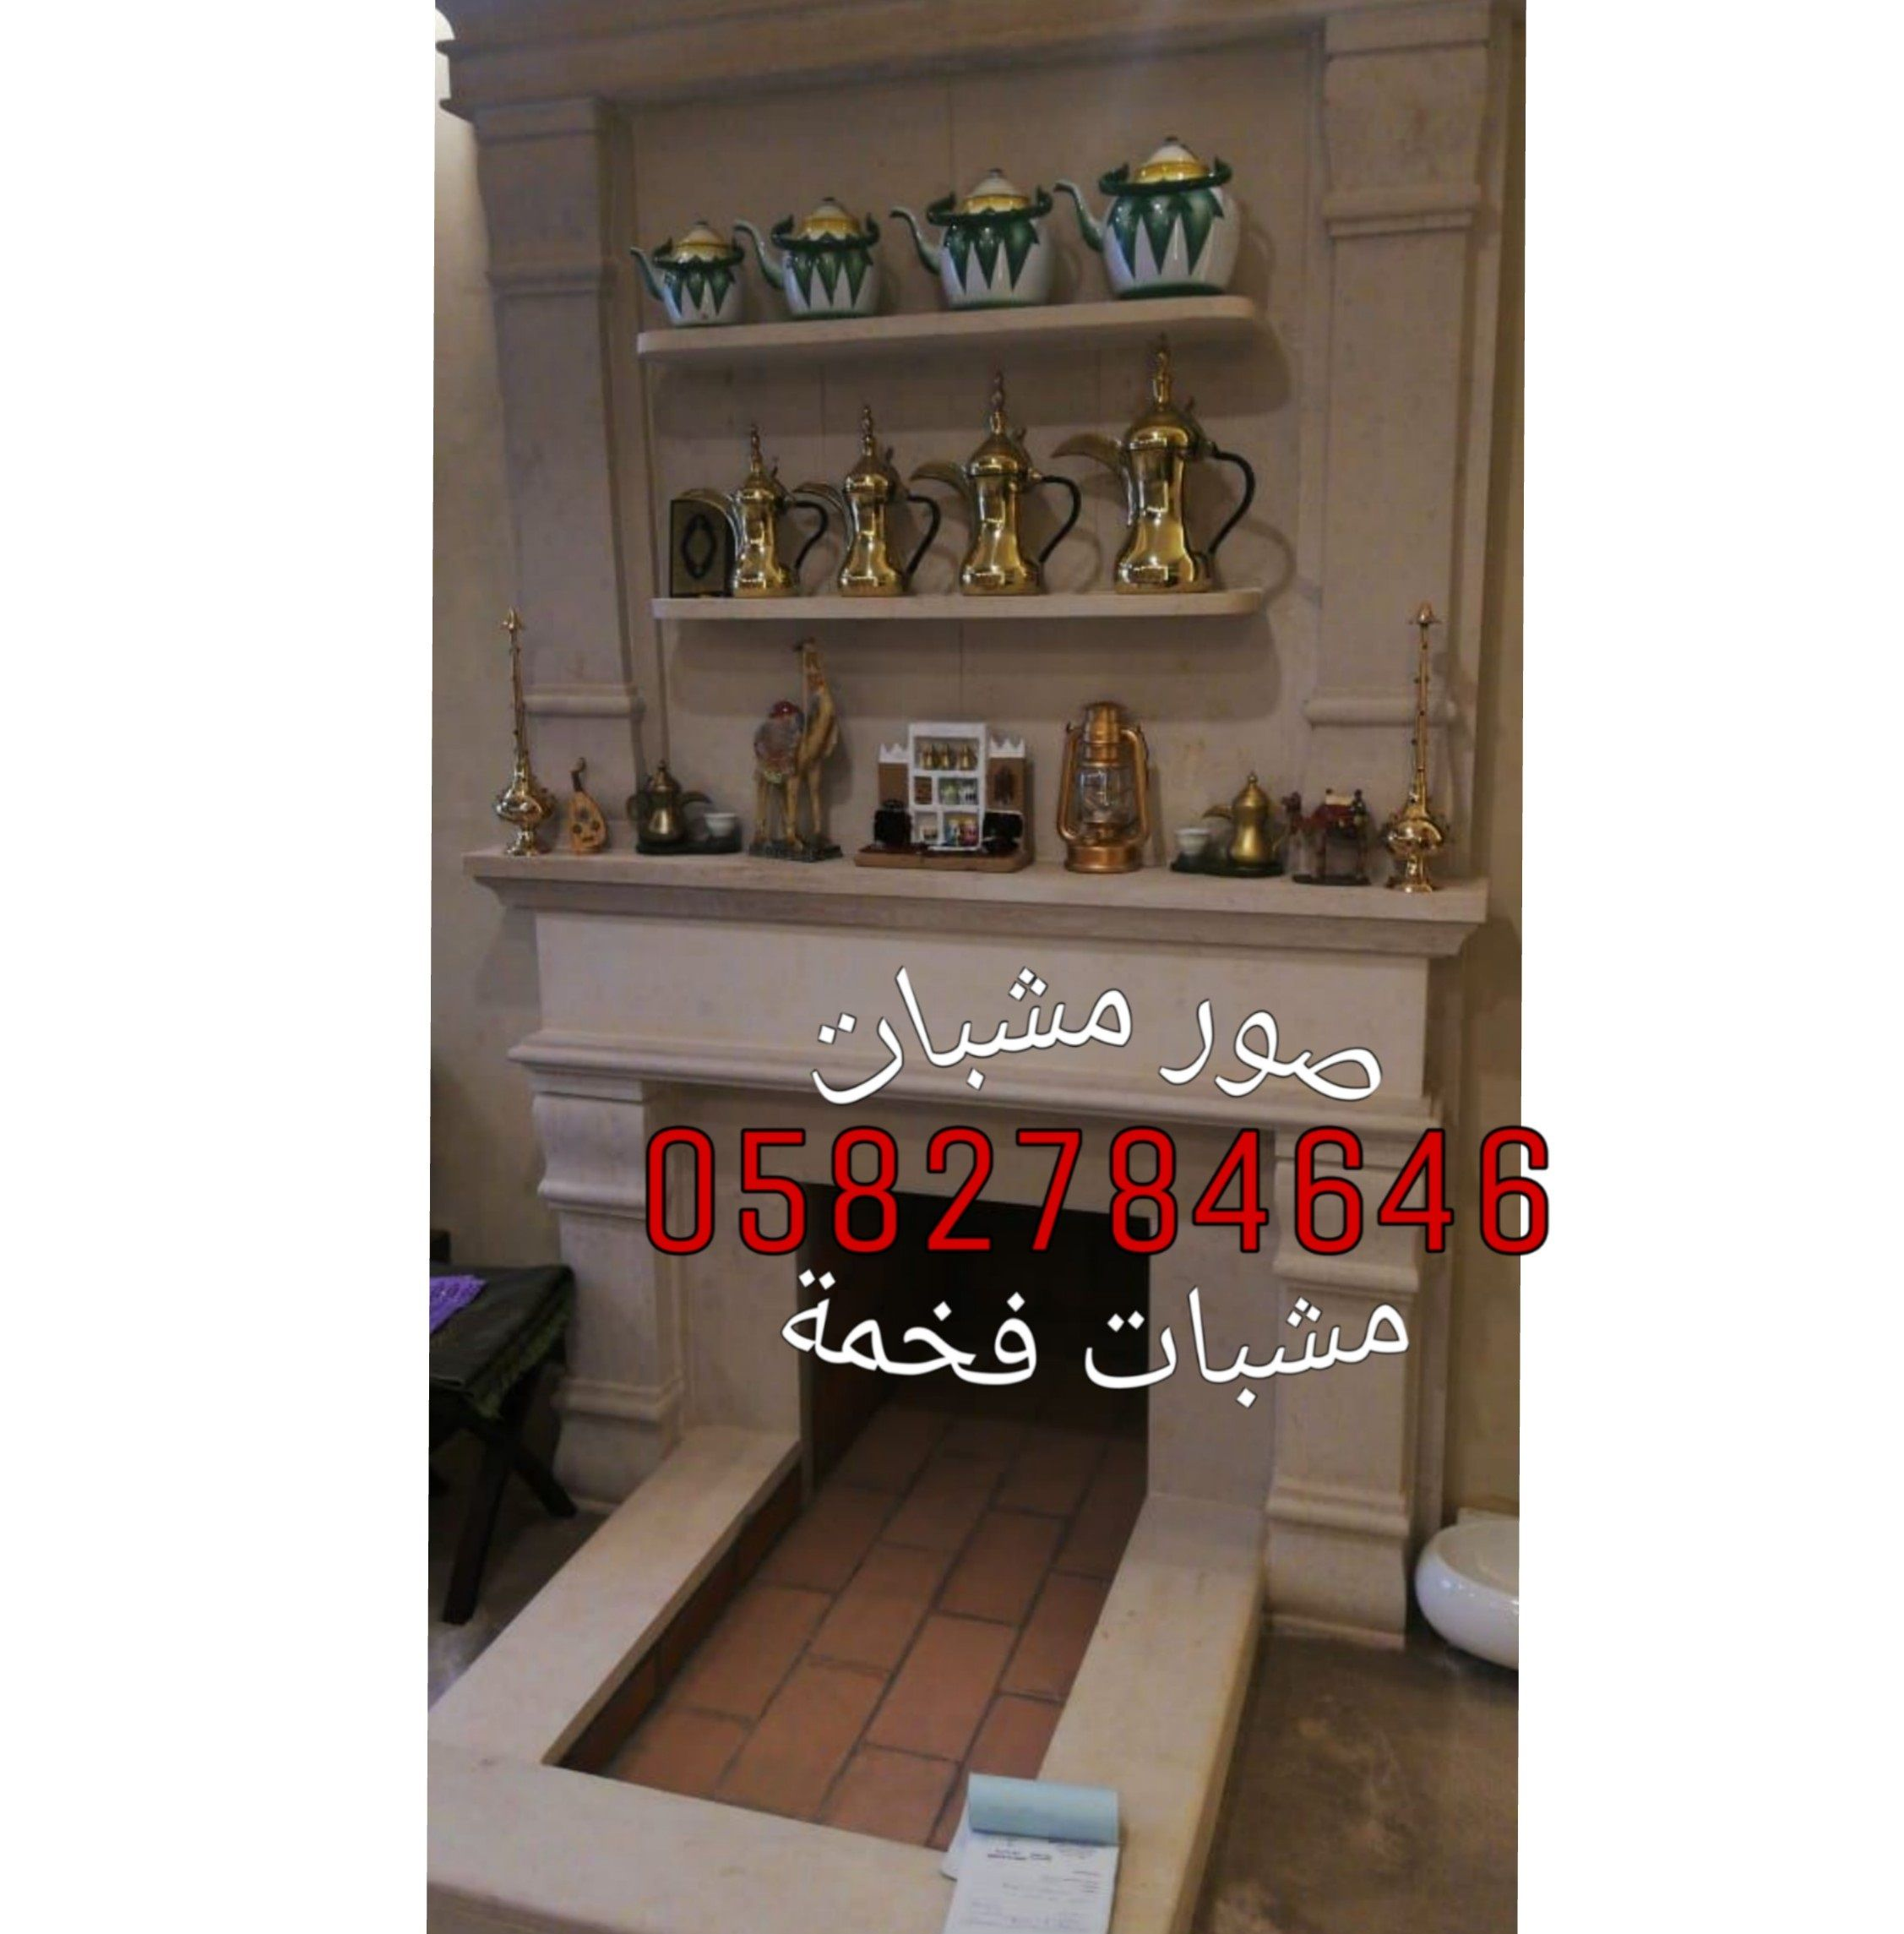 مشبات جلسات ارضيه مشبات Bathroom Medicine Cabinet Medicine Cabinet Home Decor